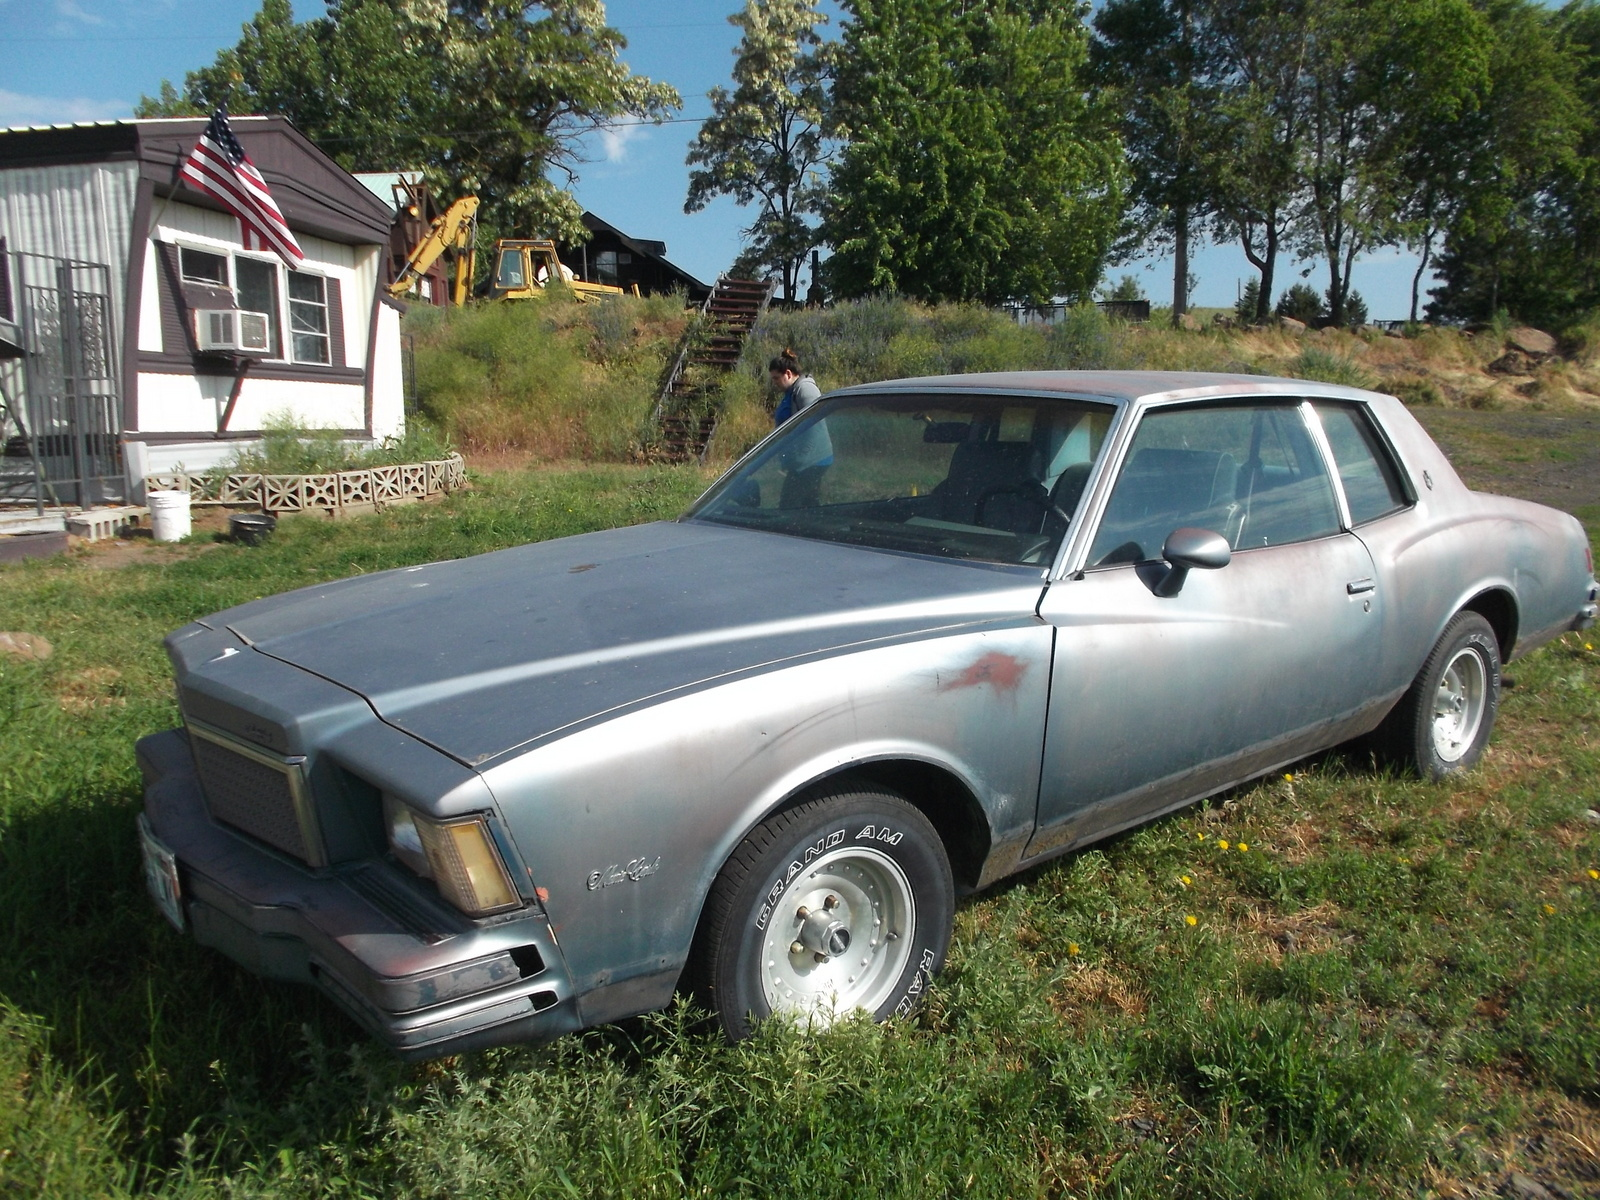 New Chevrolet Ss Franklin >> 1978 Chevrolet Monte Carlo - Overview - CarGurus